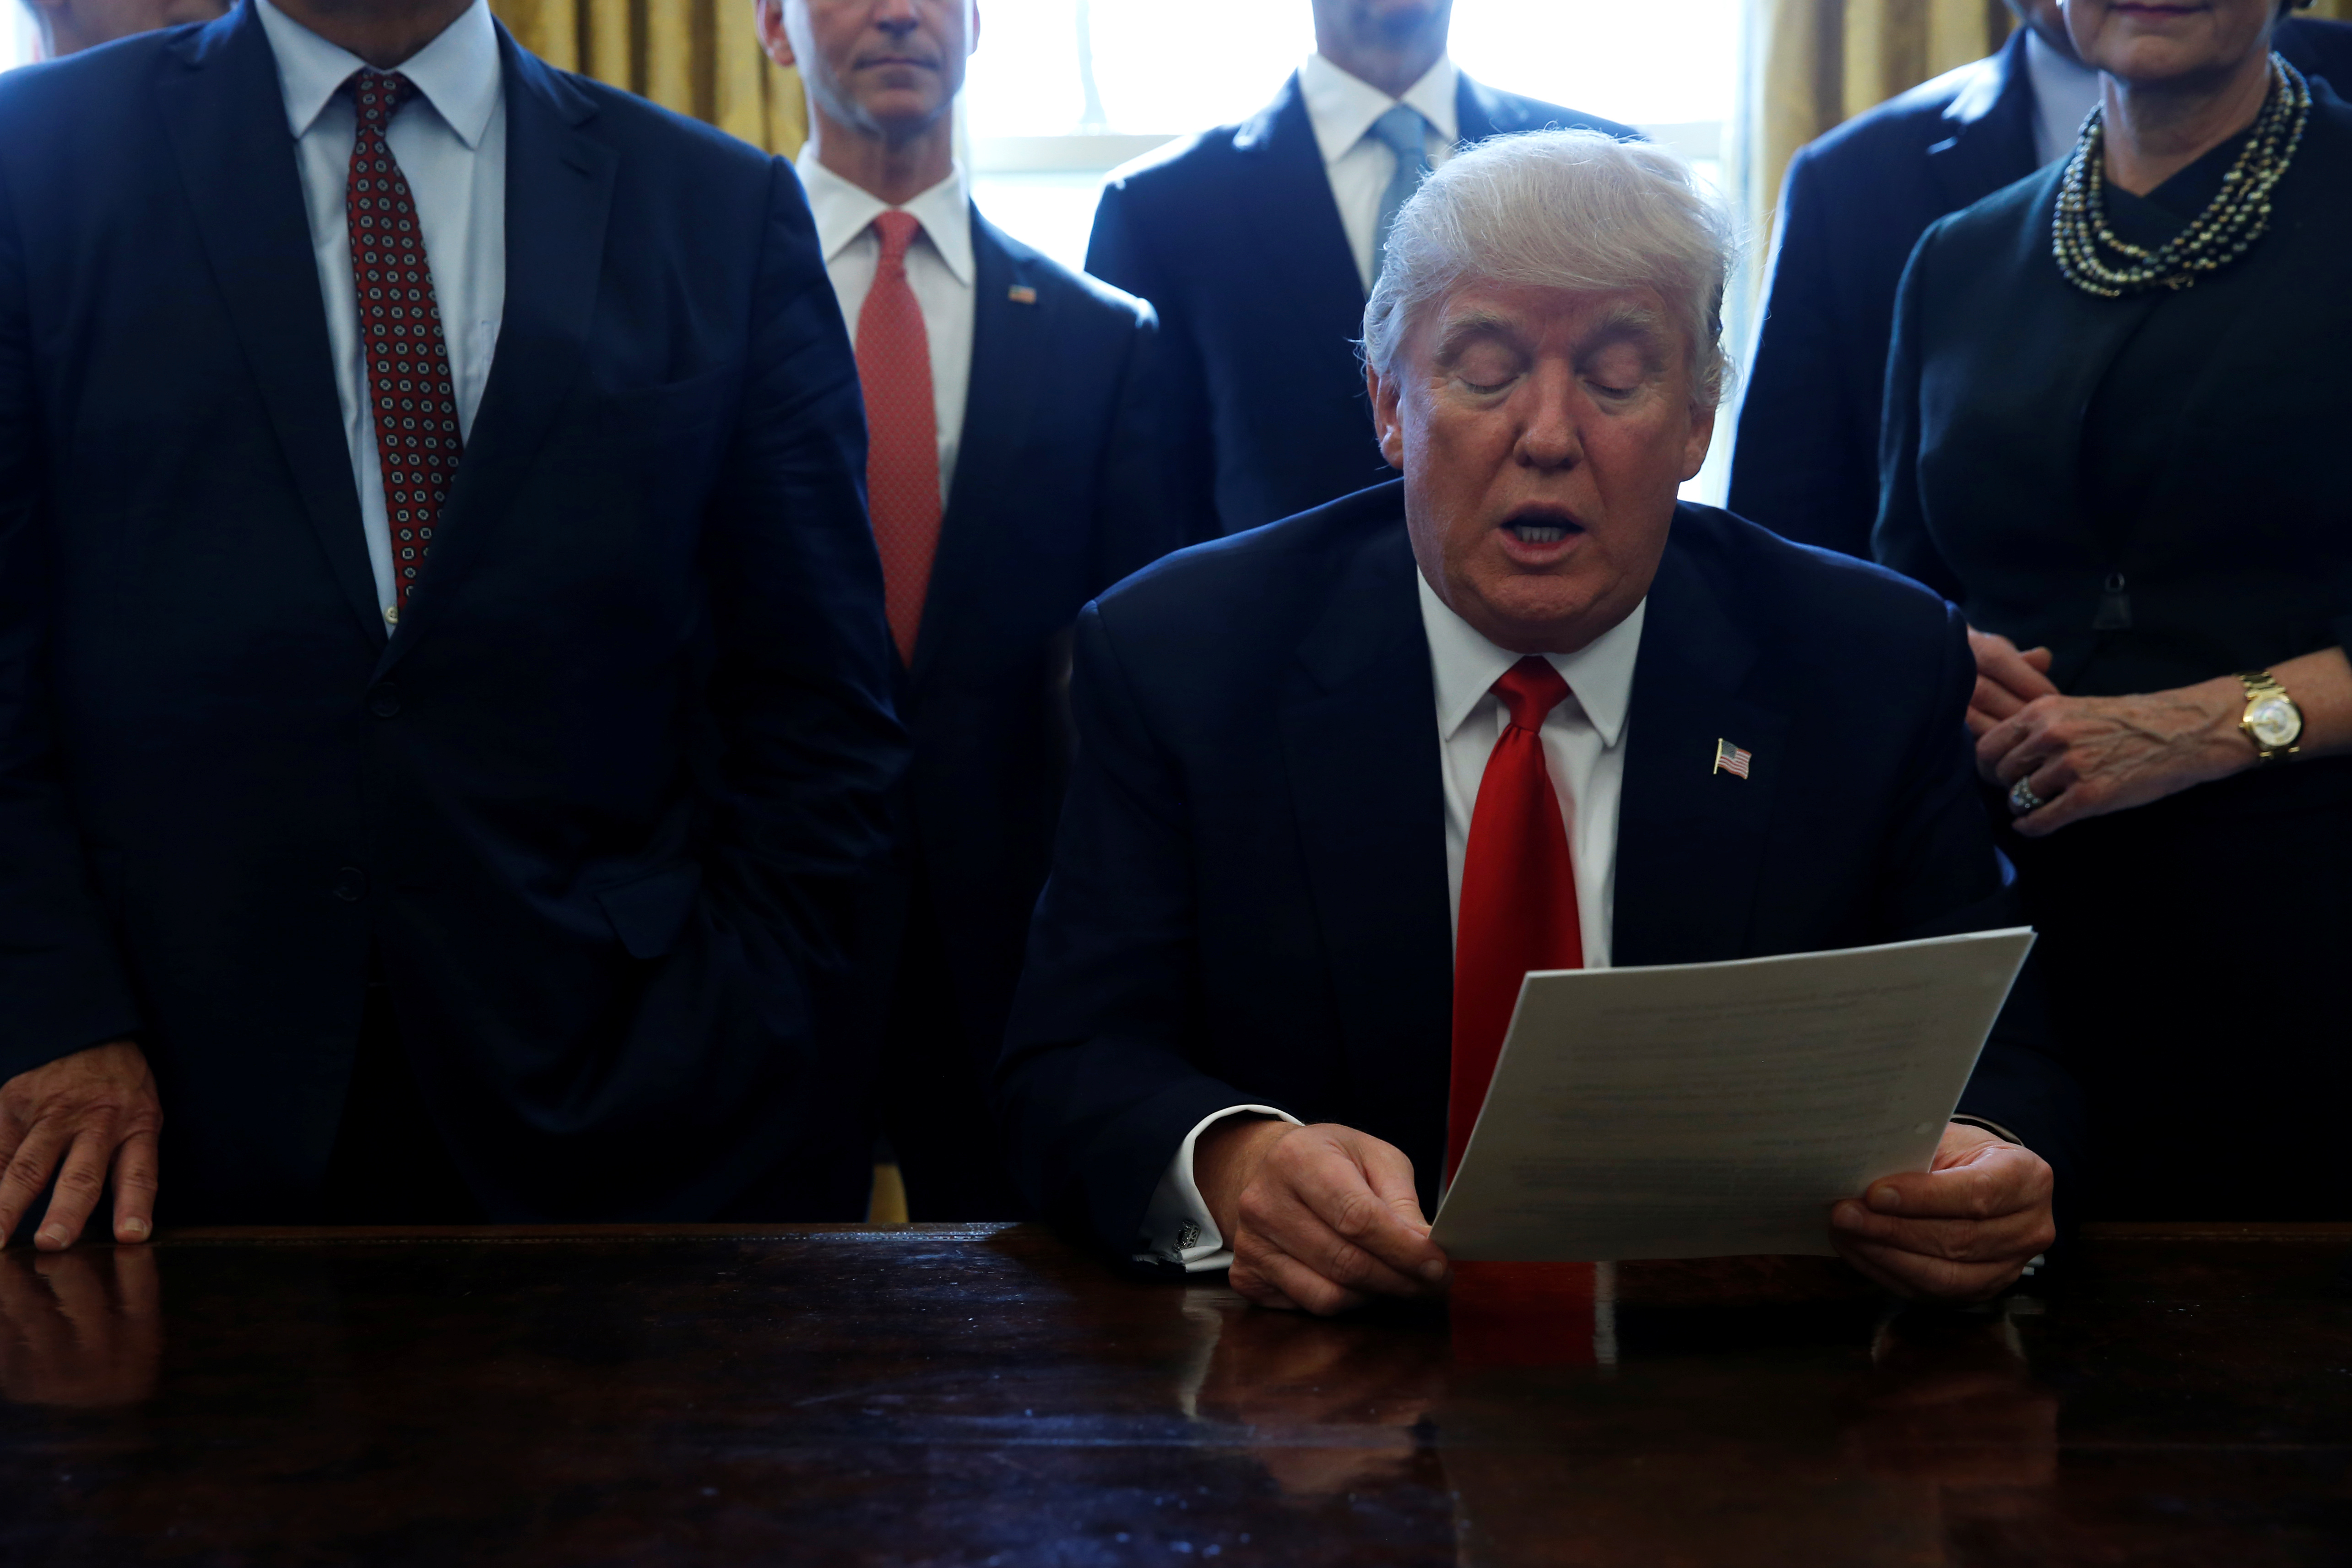 U.S. President Donald Trump is surrounded by business leaders as he delivers remarks before signing an executive order on regulatory reform at his desk in the Oval Office at the White House, U.S. February 24, 2017. REUTERS/Jonathan Ernst - RC1B6DF7B3F0